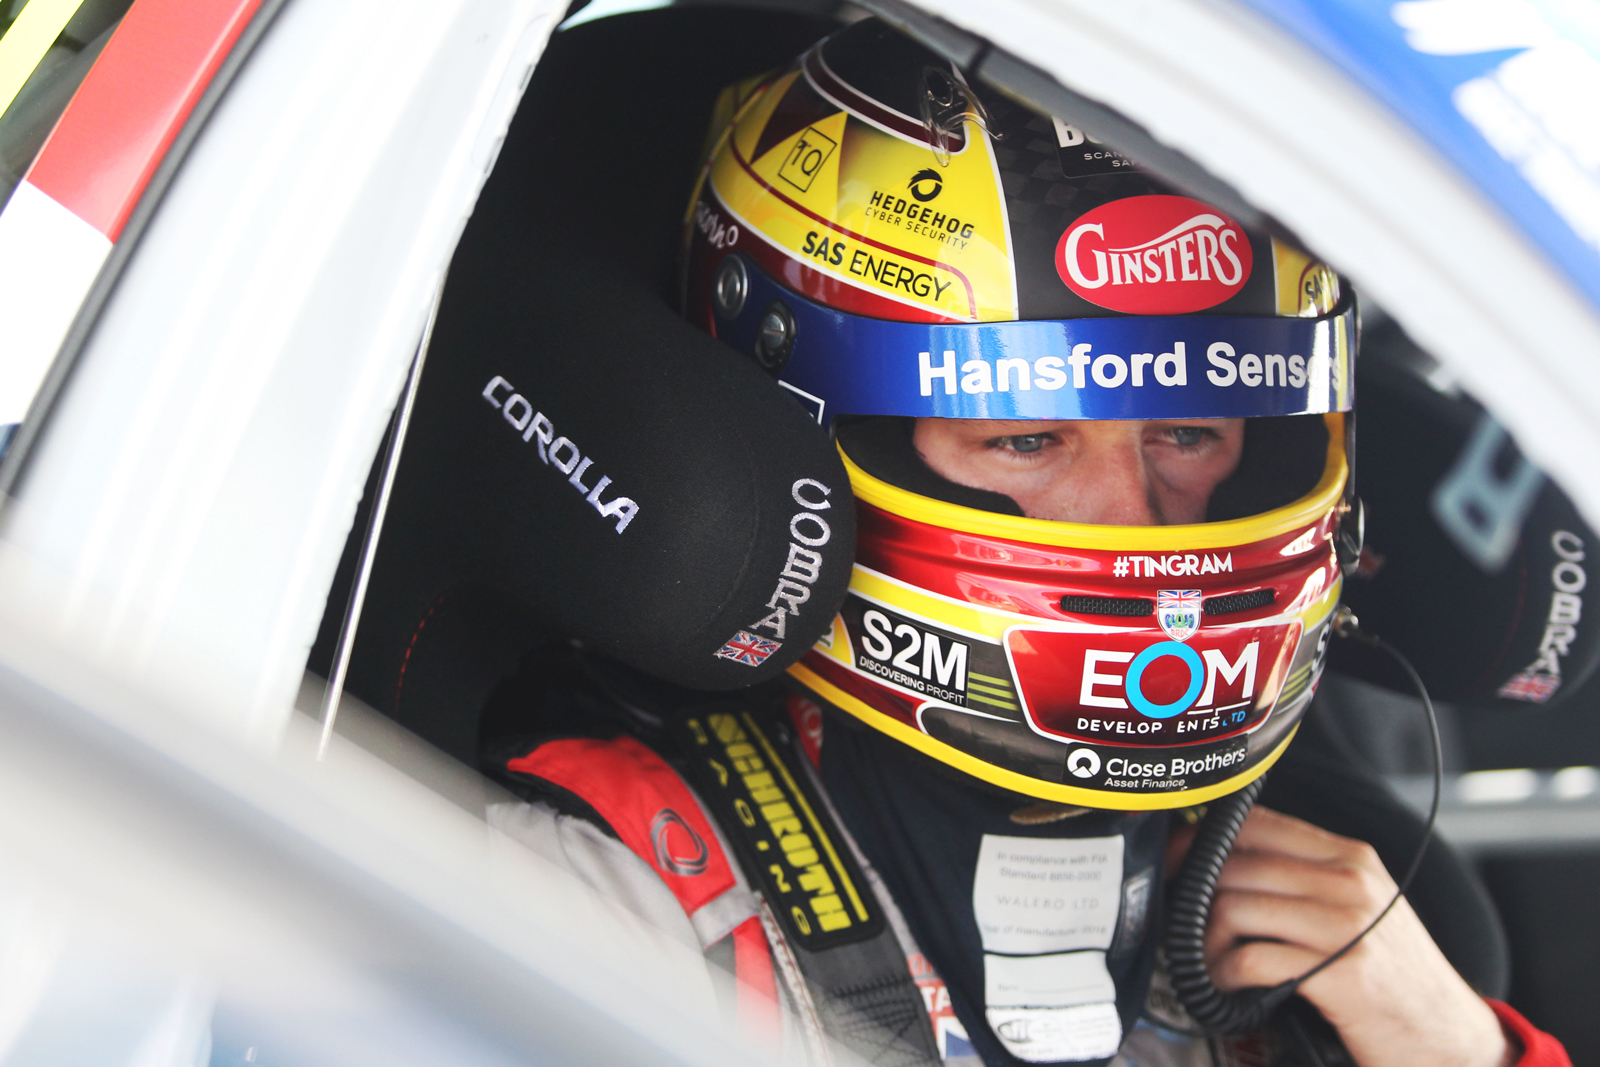 Ingram sitting in car with helmet and gear on ready for race